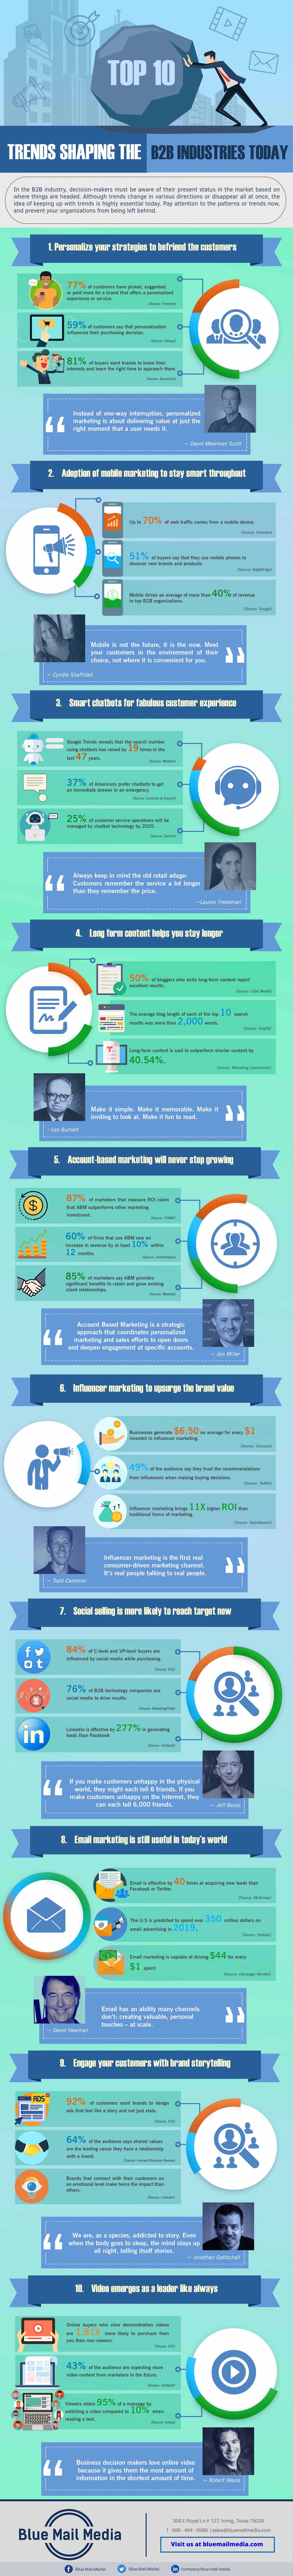 Top 10 Trends Shaping B2B Industries Today